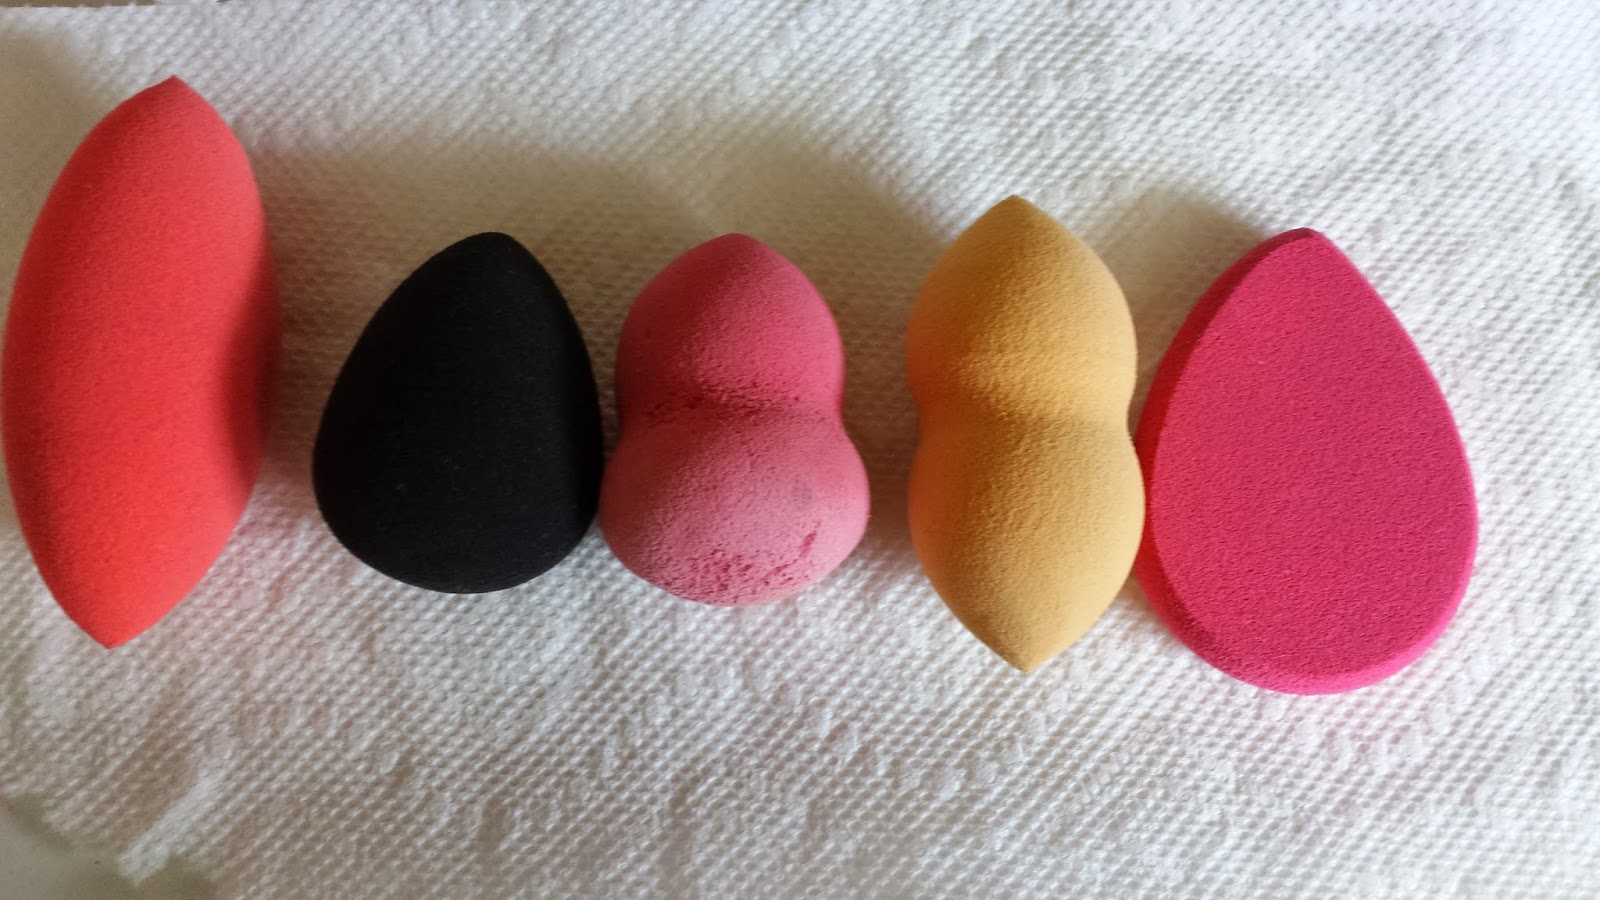 Moden Makeup: Beauty Sponge Woes